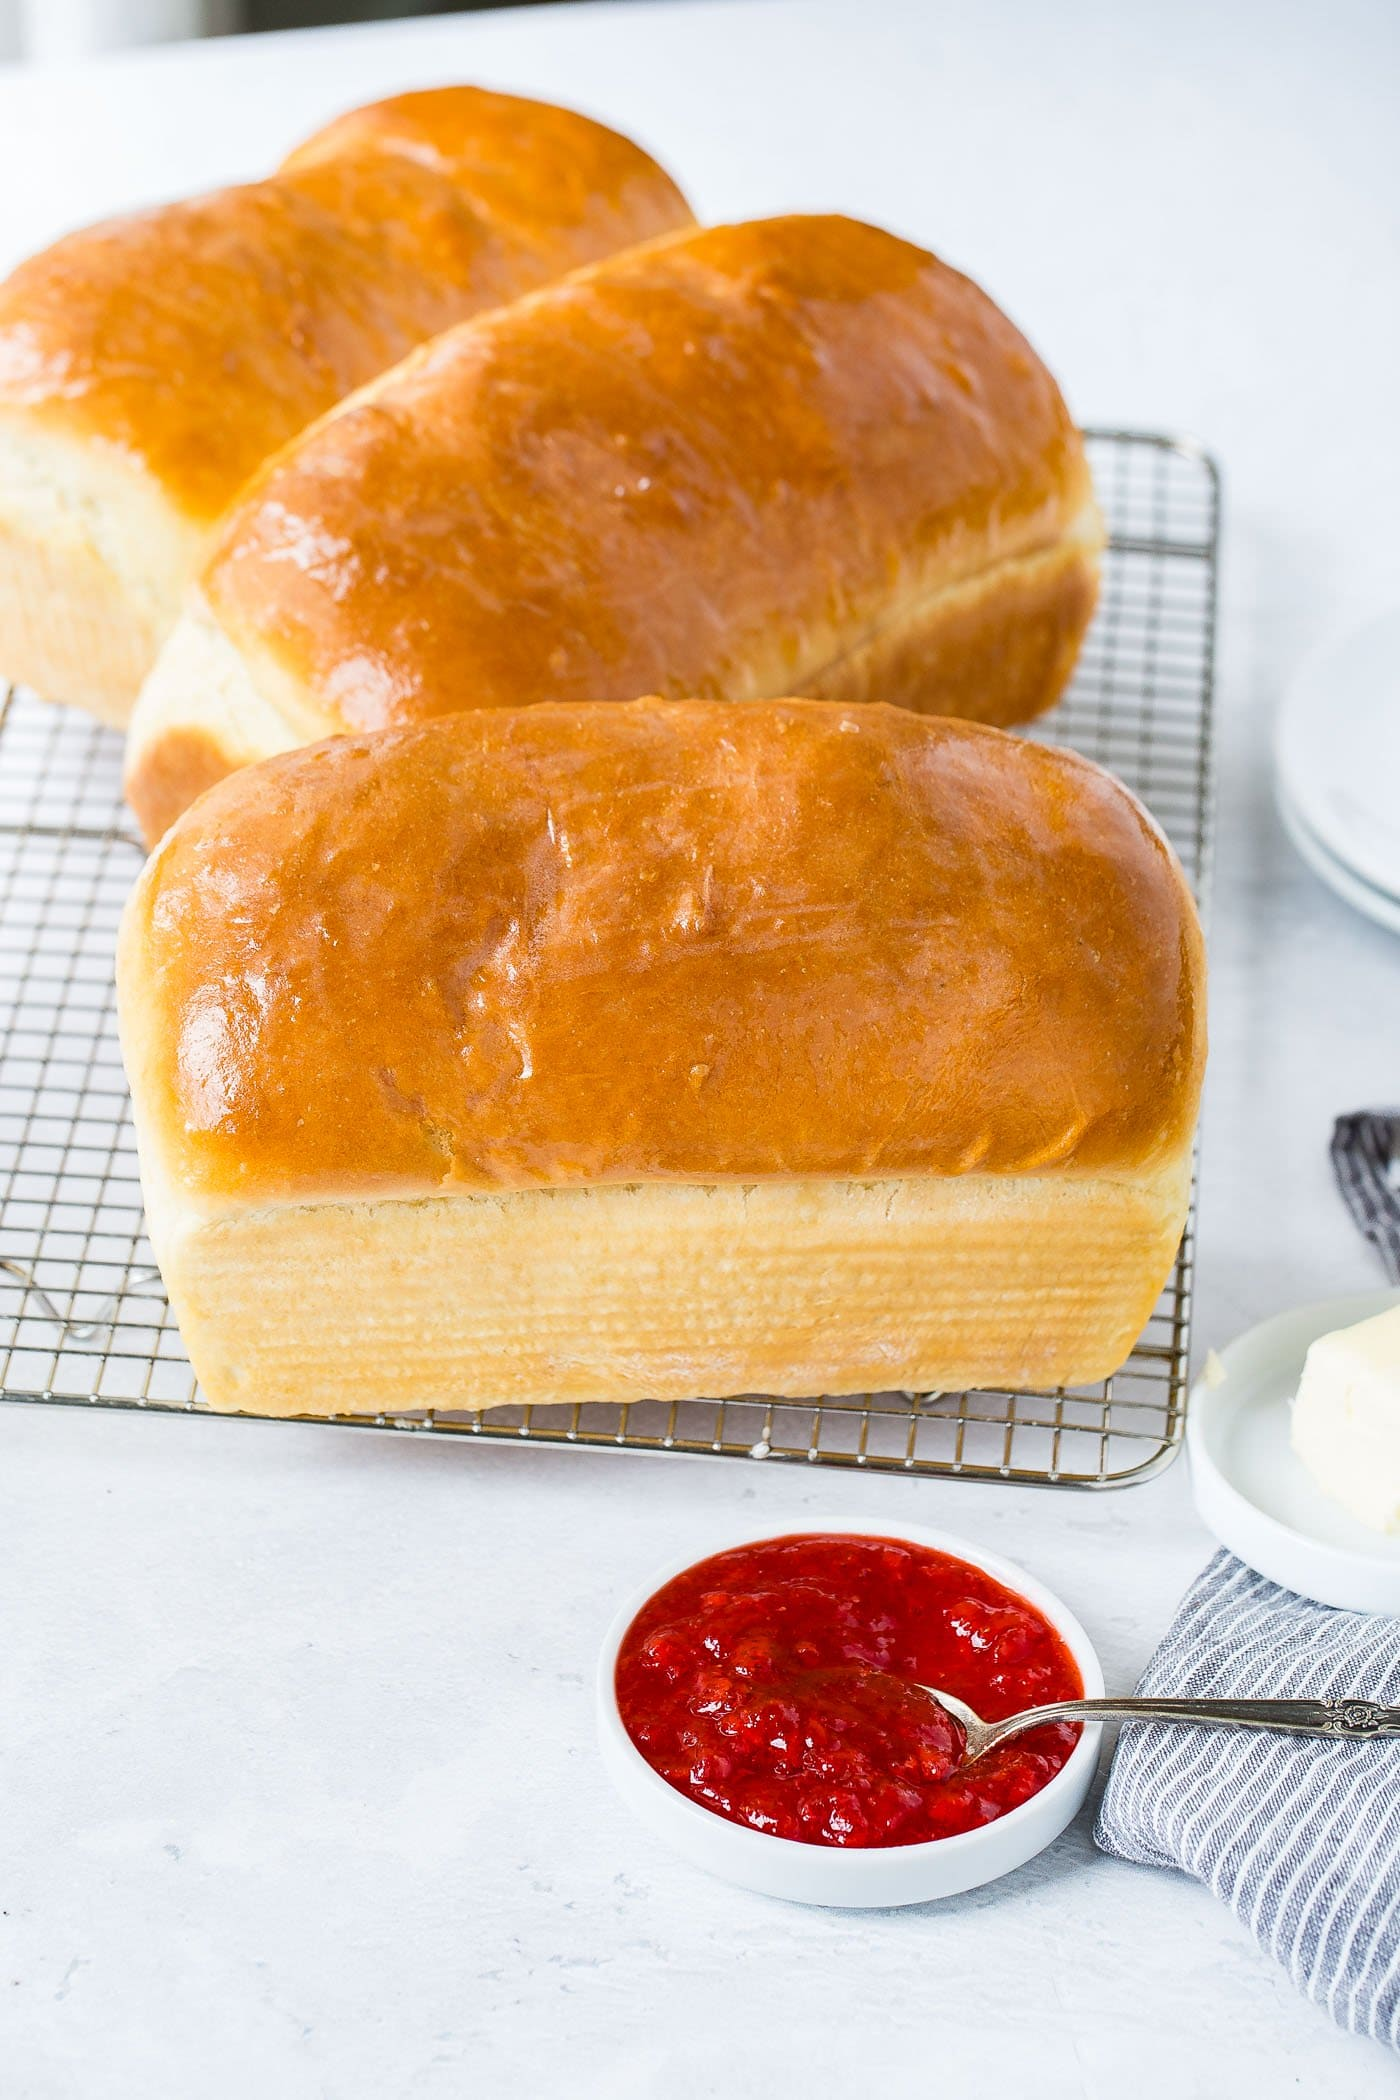 Three loaves of fresh baked, homemade white bread, sitting on a wire cooling rack. There are two bread plates, a dish of butter, and a small container of strawberry jam next to the bread.